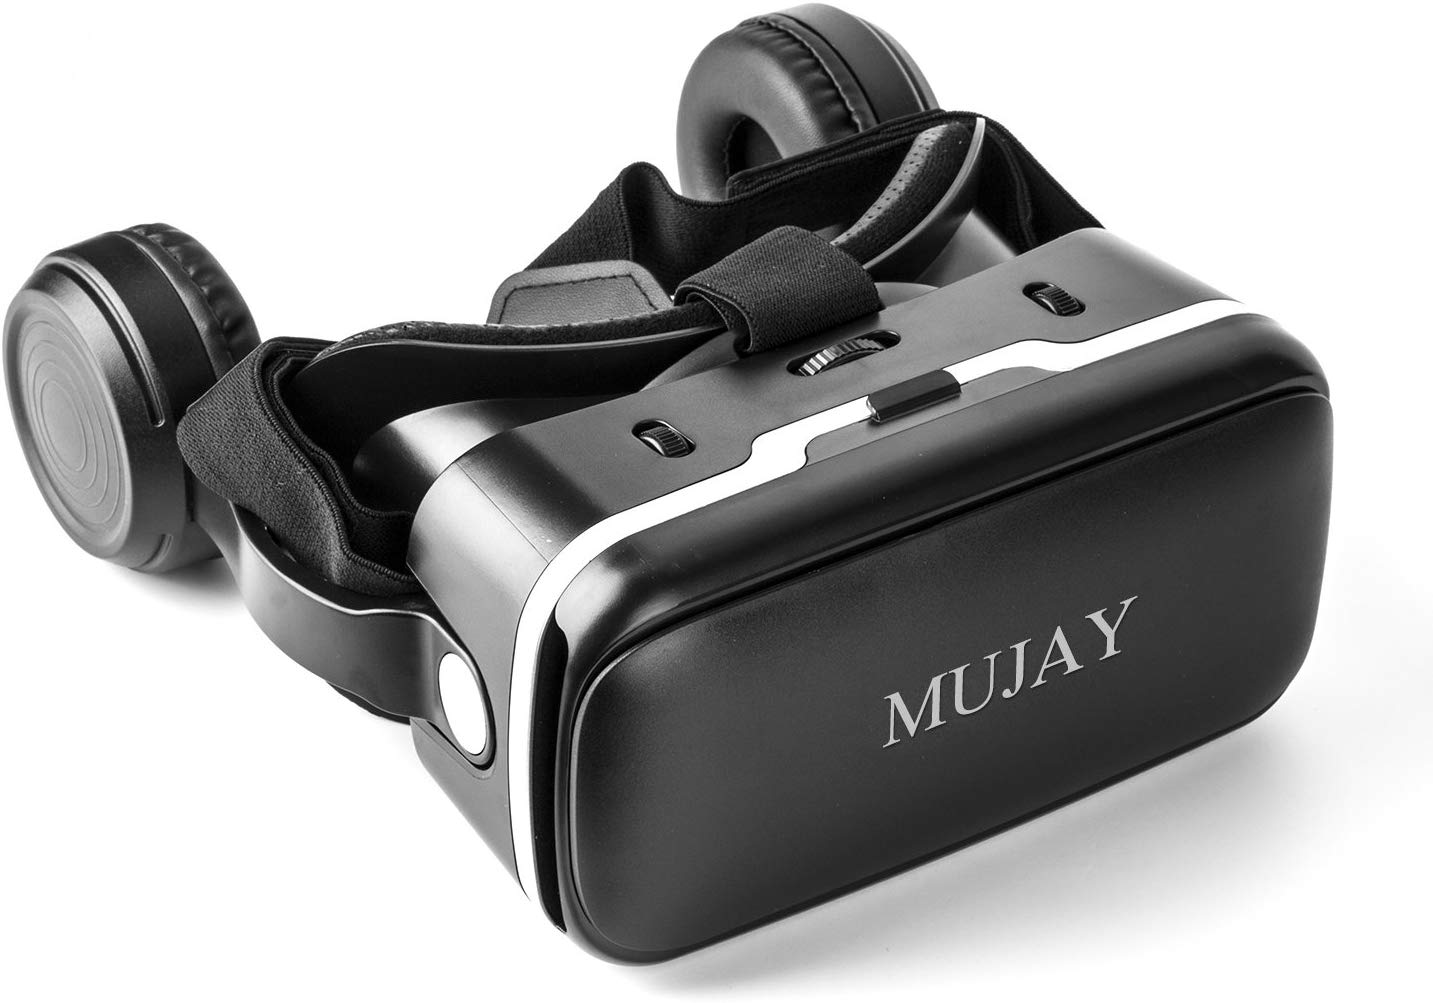 MUJAY 3D VR Headset Technology - Best Virtual Reality Experience For Games & Video - Watch Movies In Breathtaking HD With Your Smartphone Fit Glasses & Helmet - Goggles For Your Smartphones